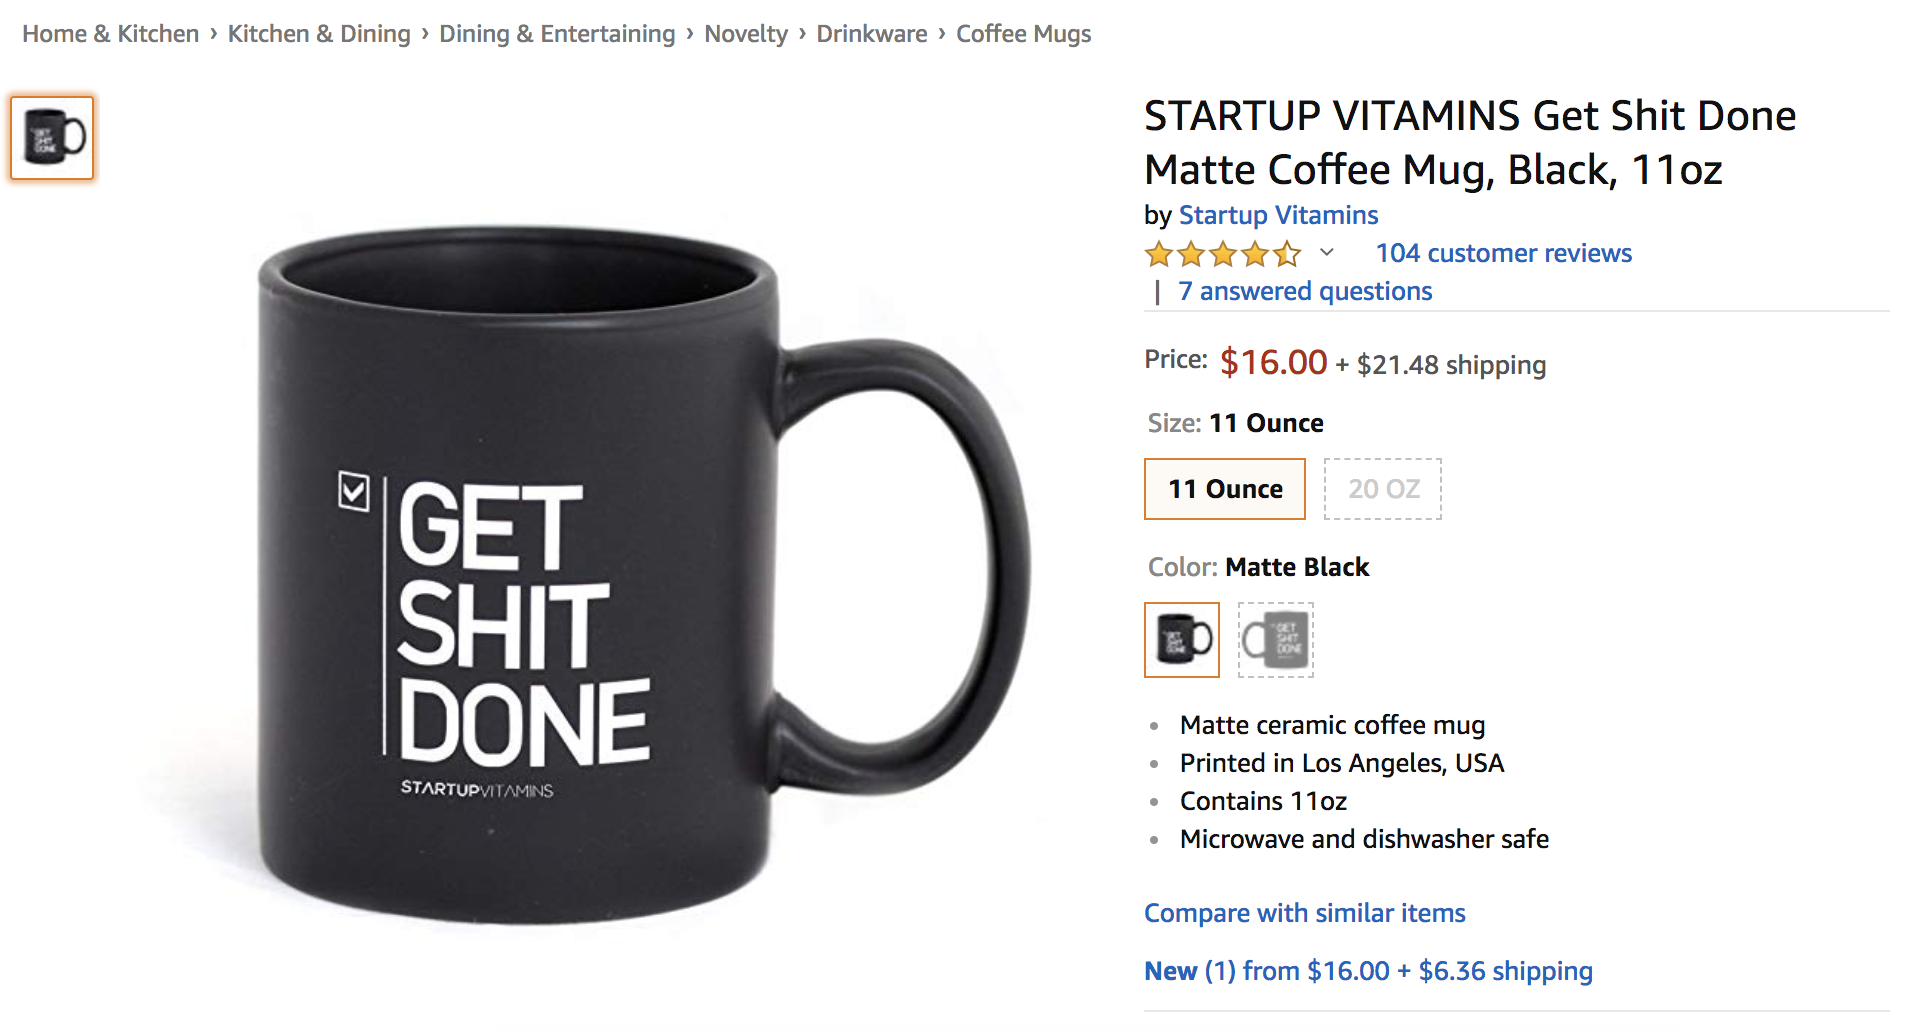 Startup Vitamins Product listing on Amazon example